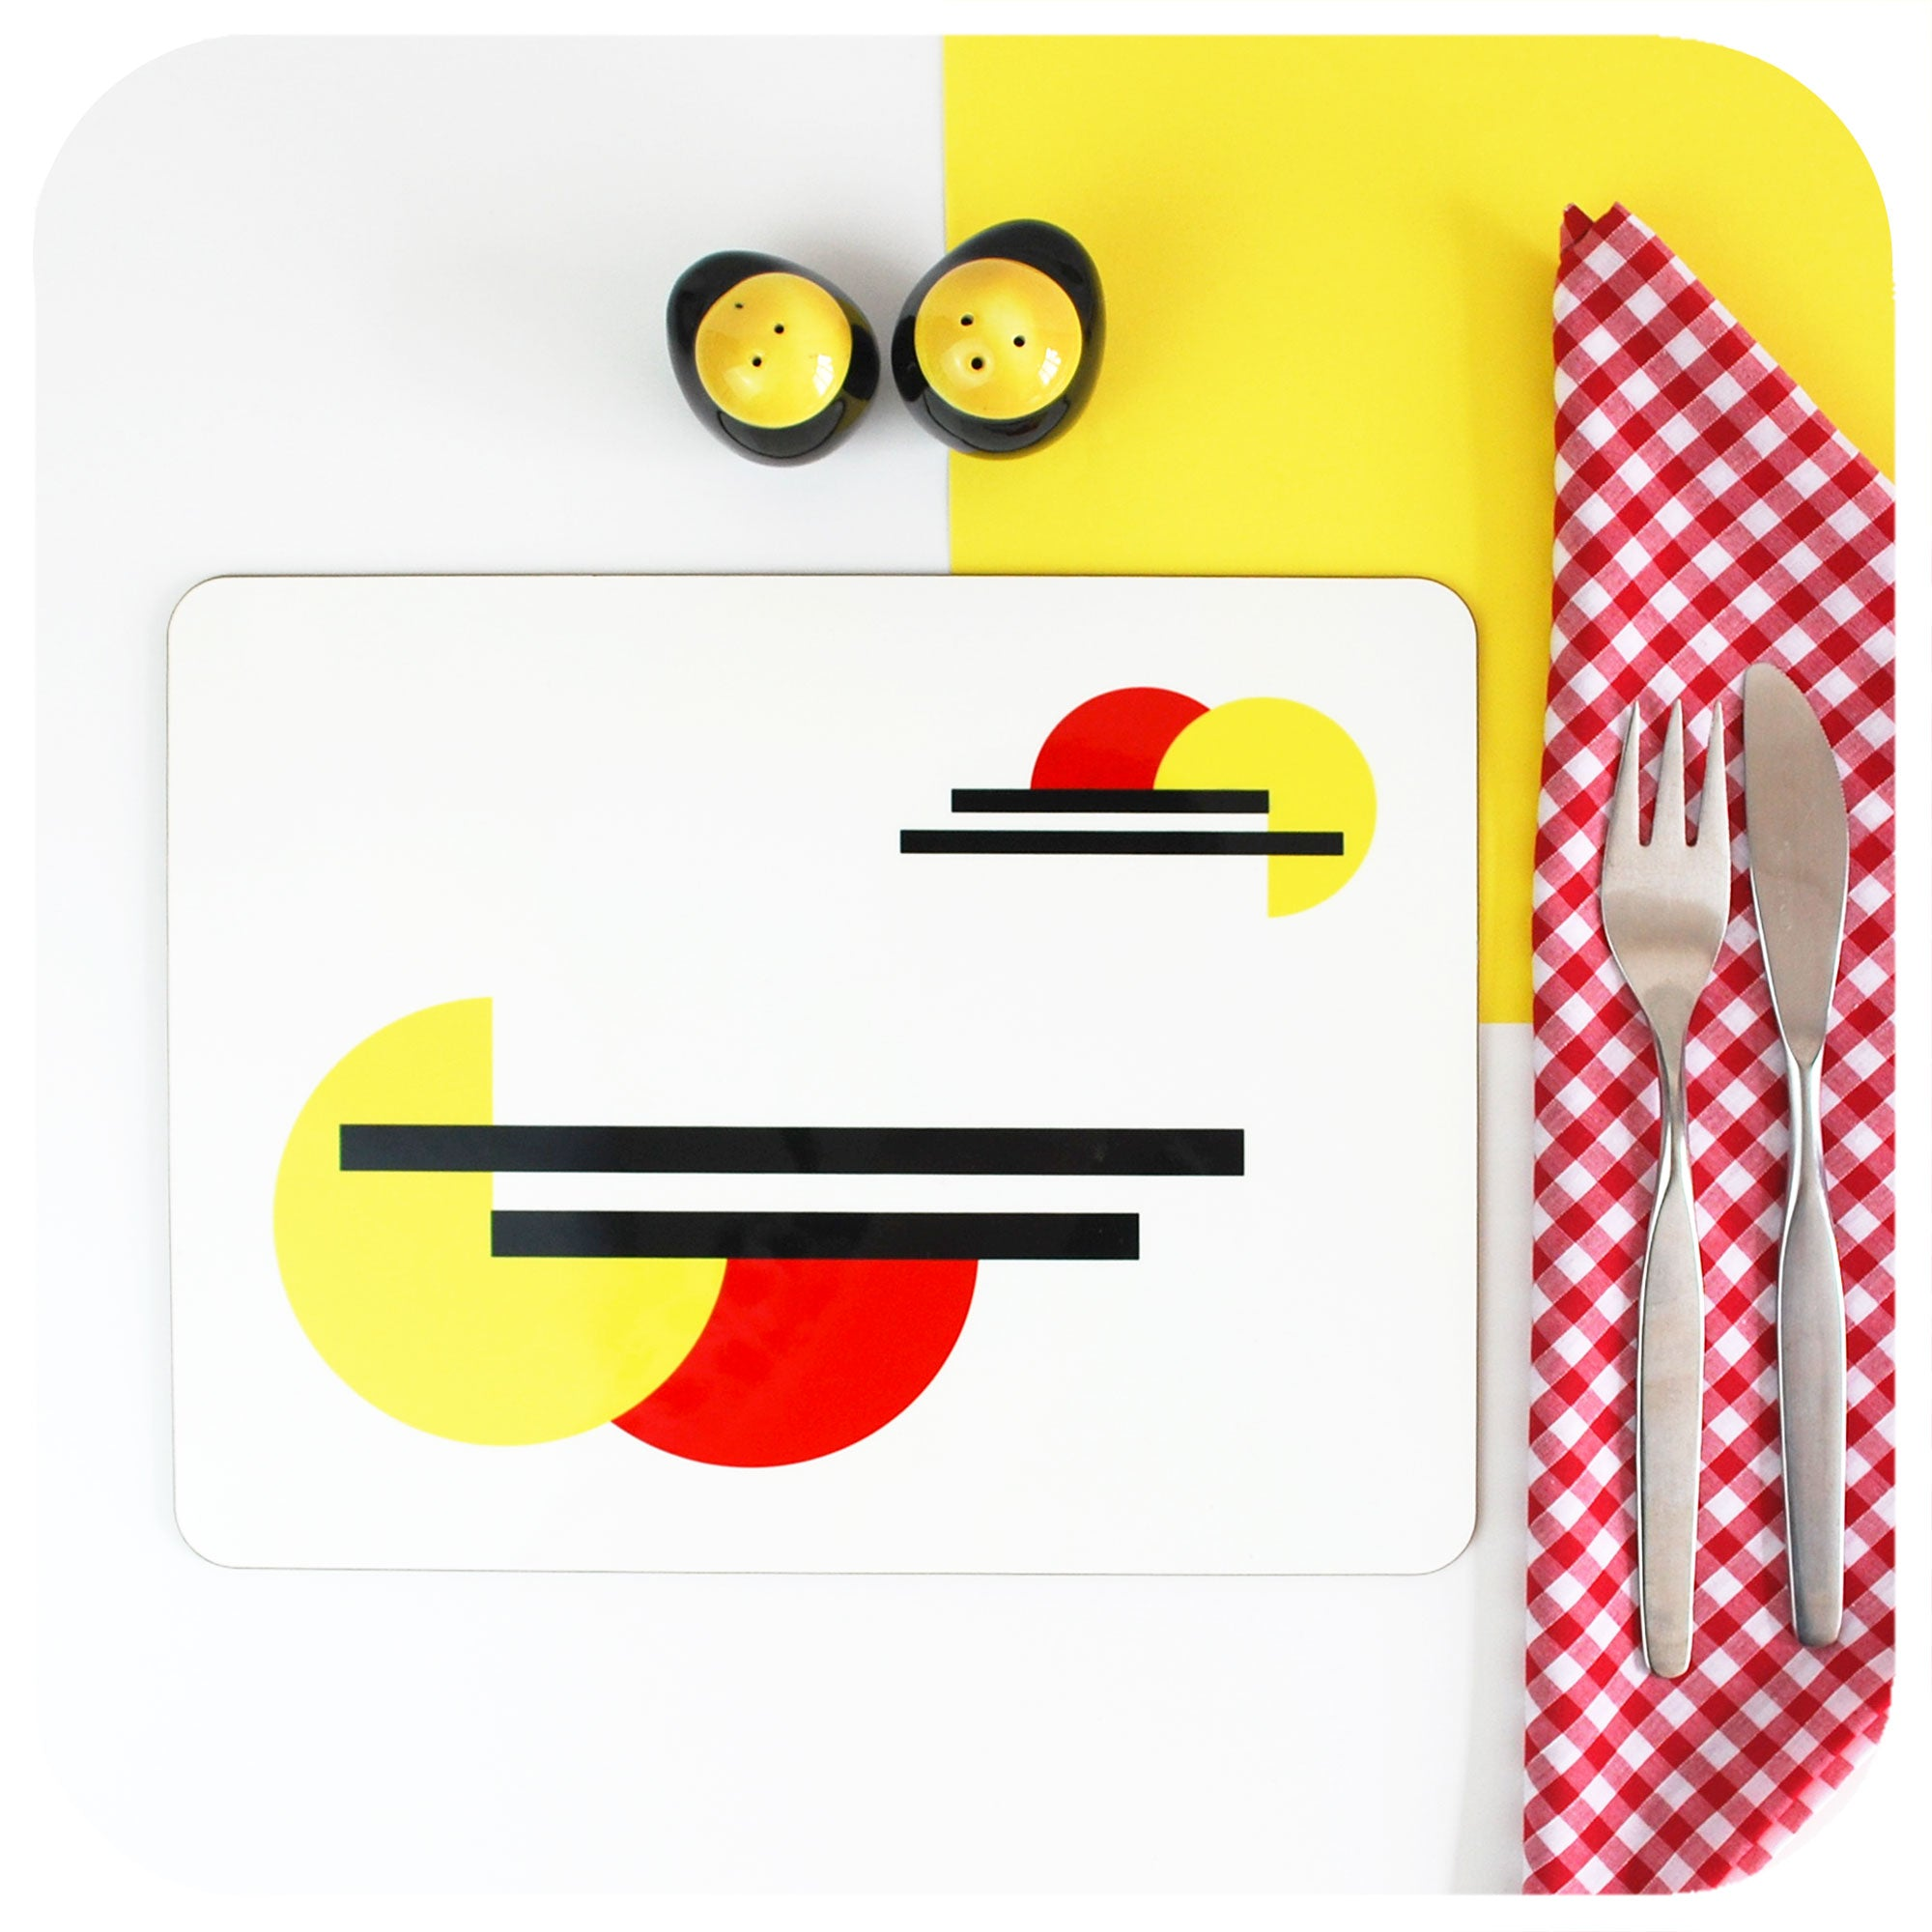 Bauhaus, modernist style placemat | The Inkabilly Emporium